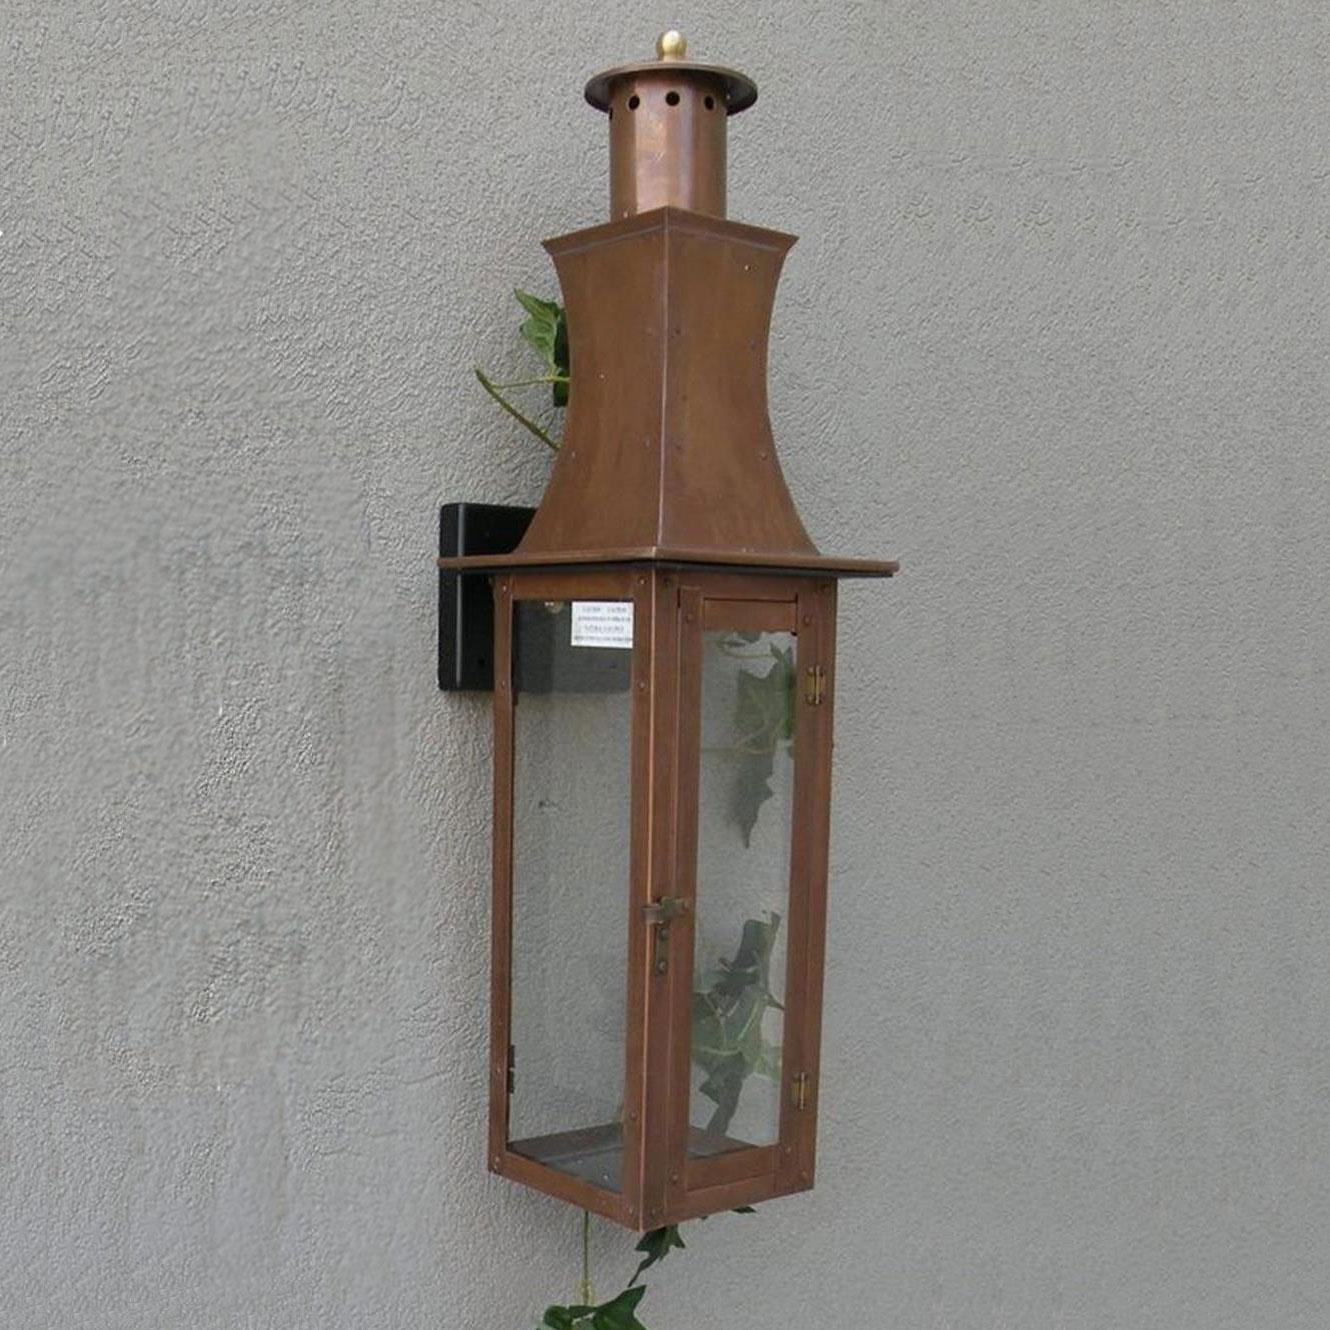 Lovely Antique Hanging On The Wall Outdoor Lighting Fixture Using Inside Japanese Outdoor Wall Lighting (#10 of 15)